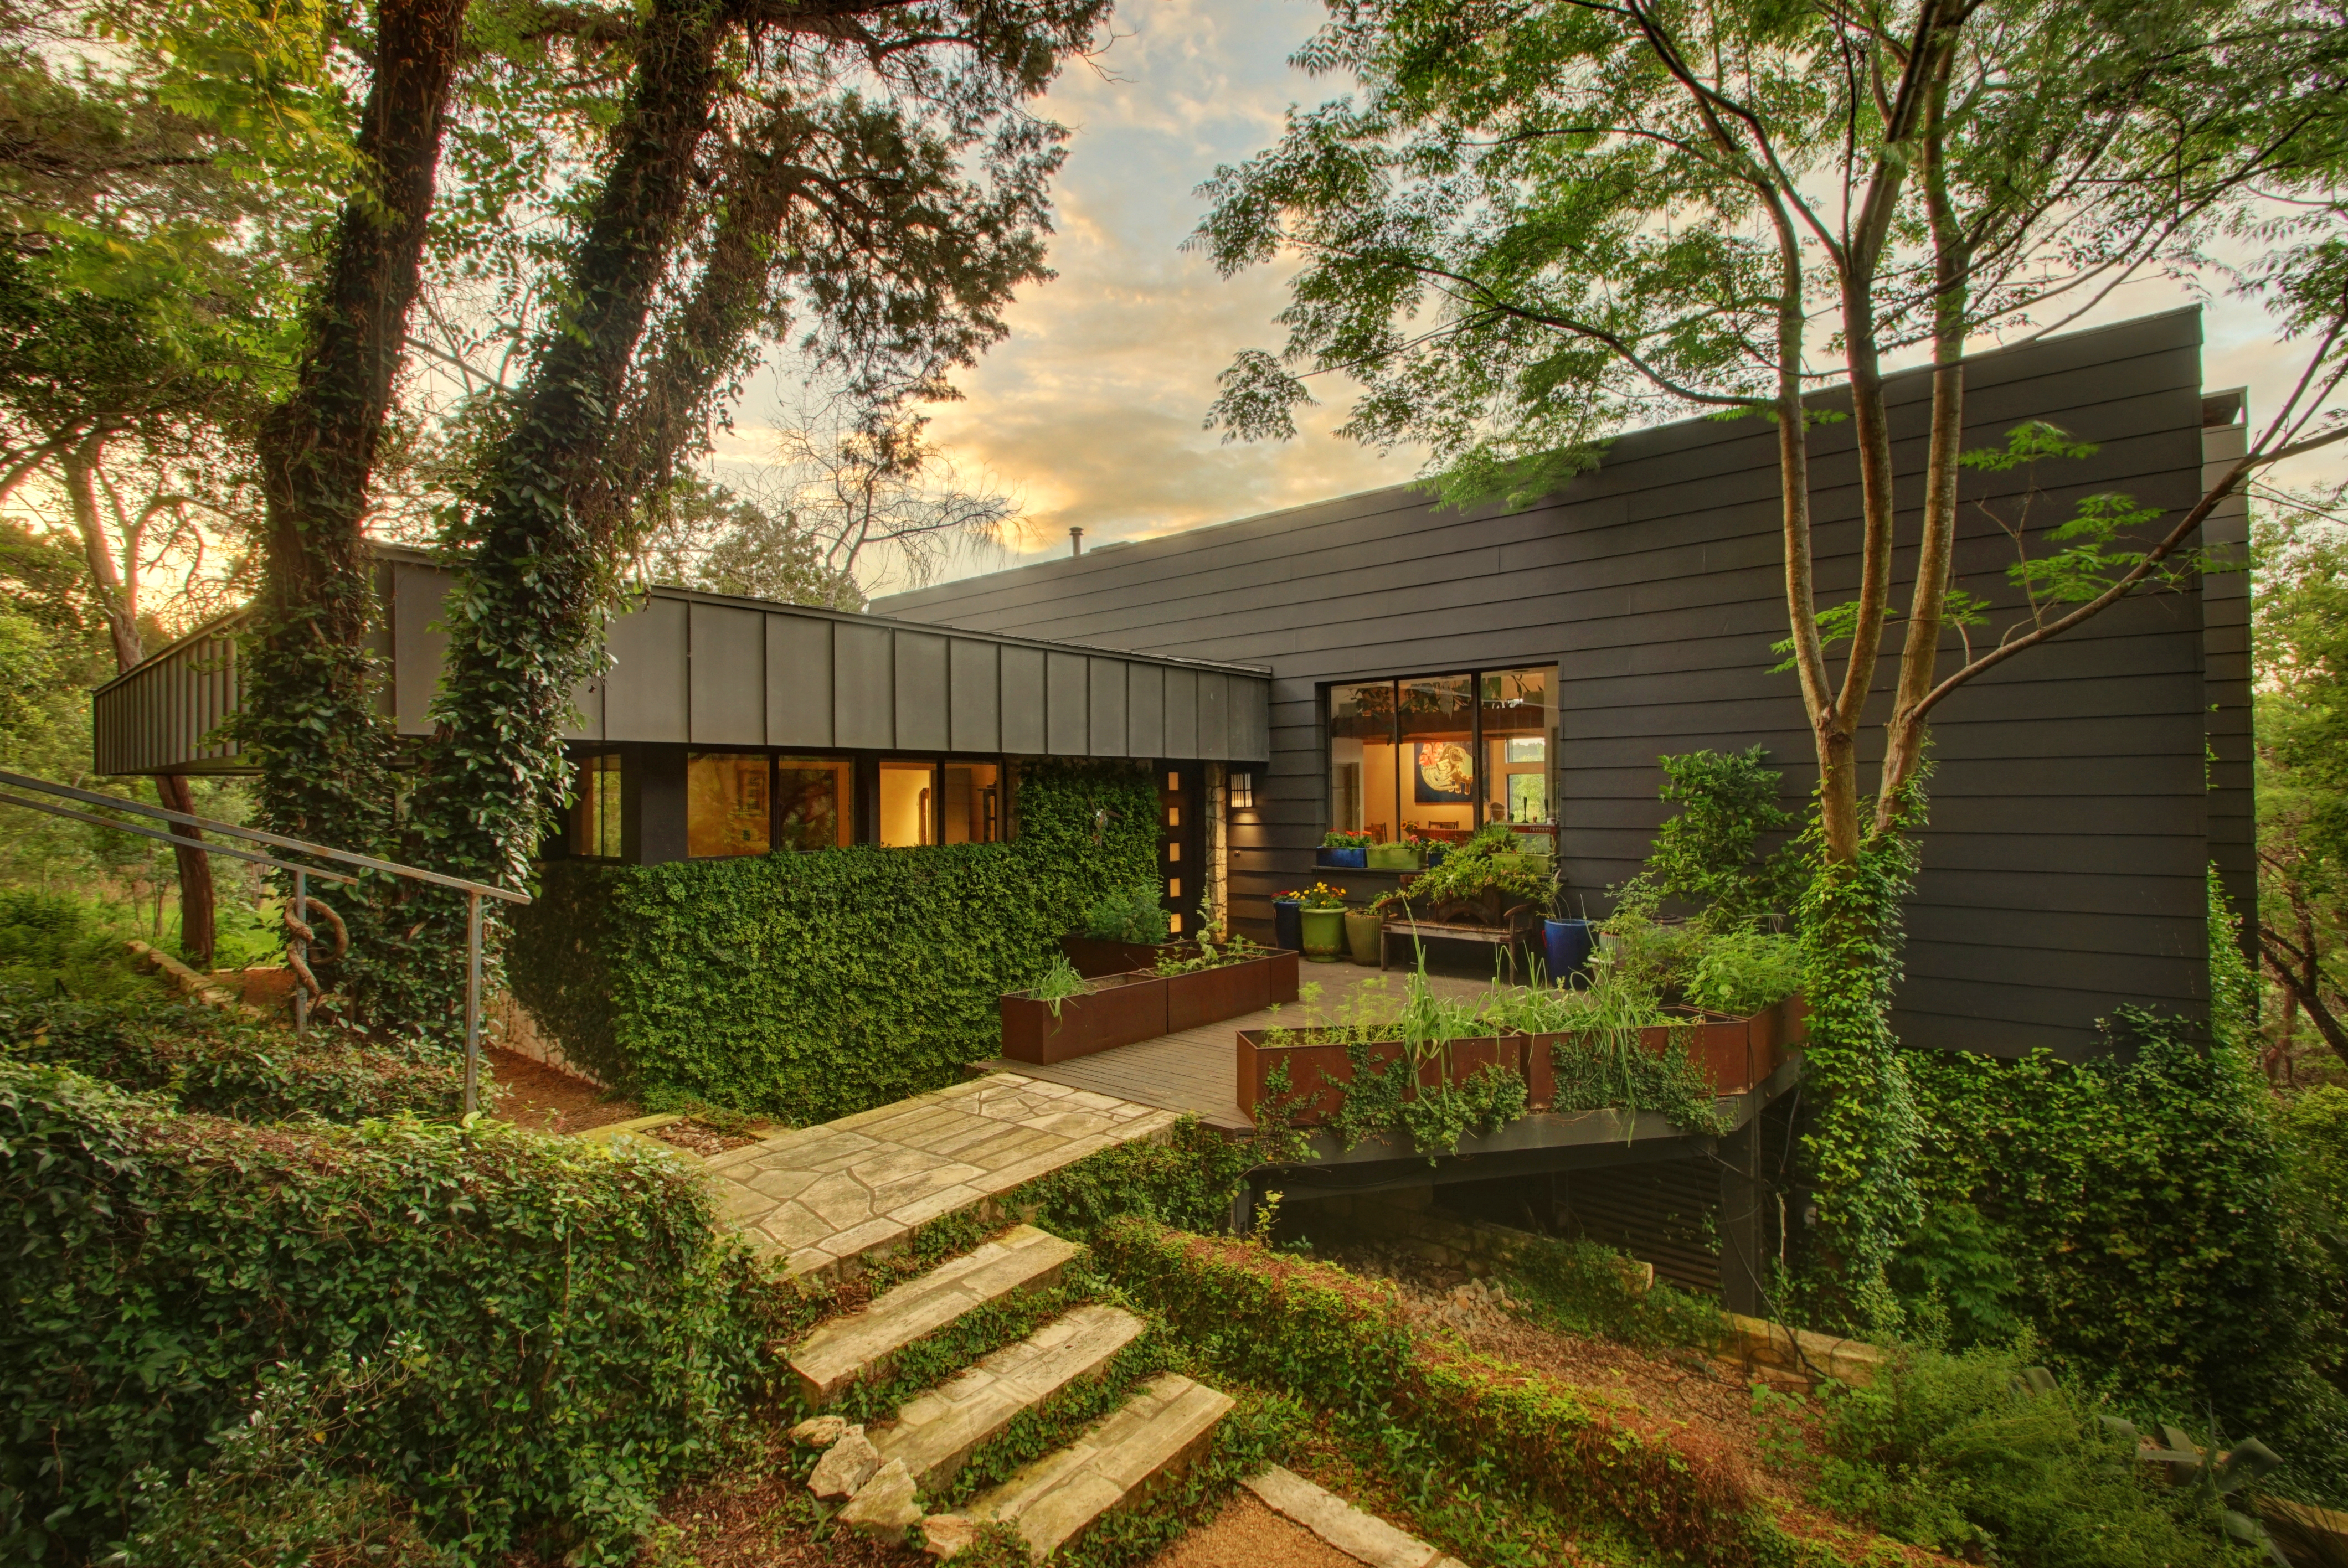 hidden home in west lake hills seeks 950k curbed austin 1992 boxy gray brown metal one story house with big patio surrounded by